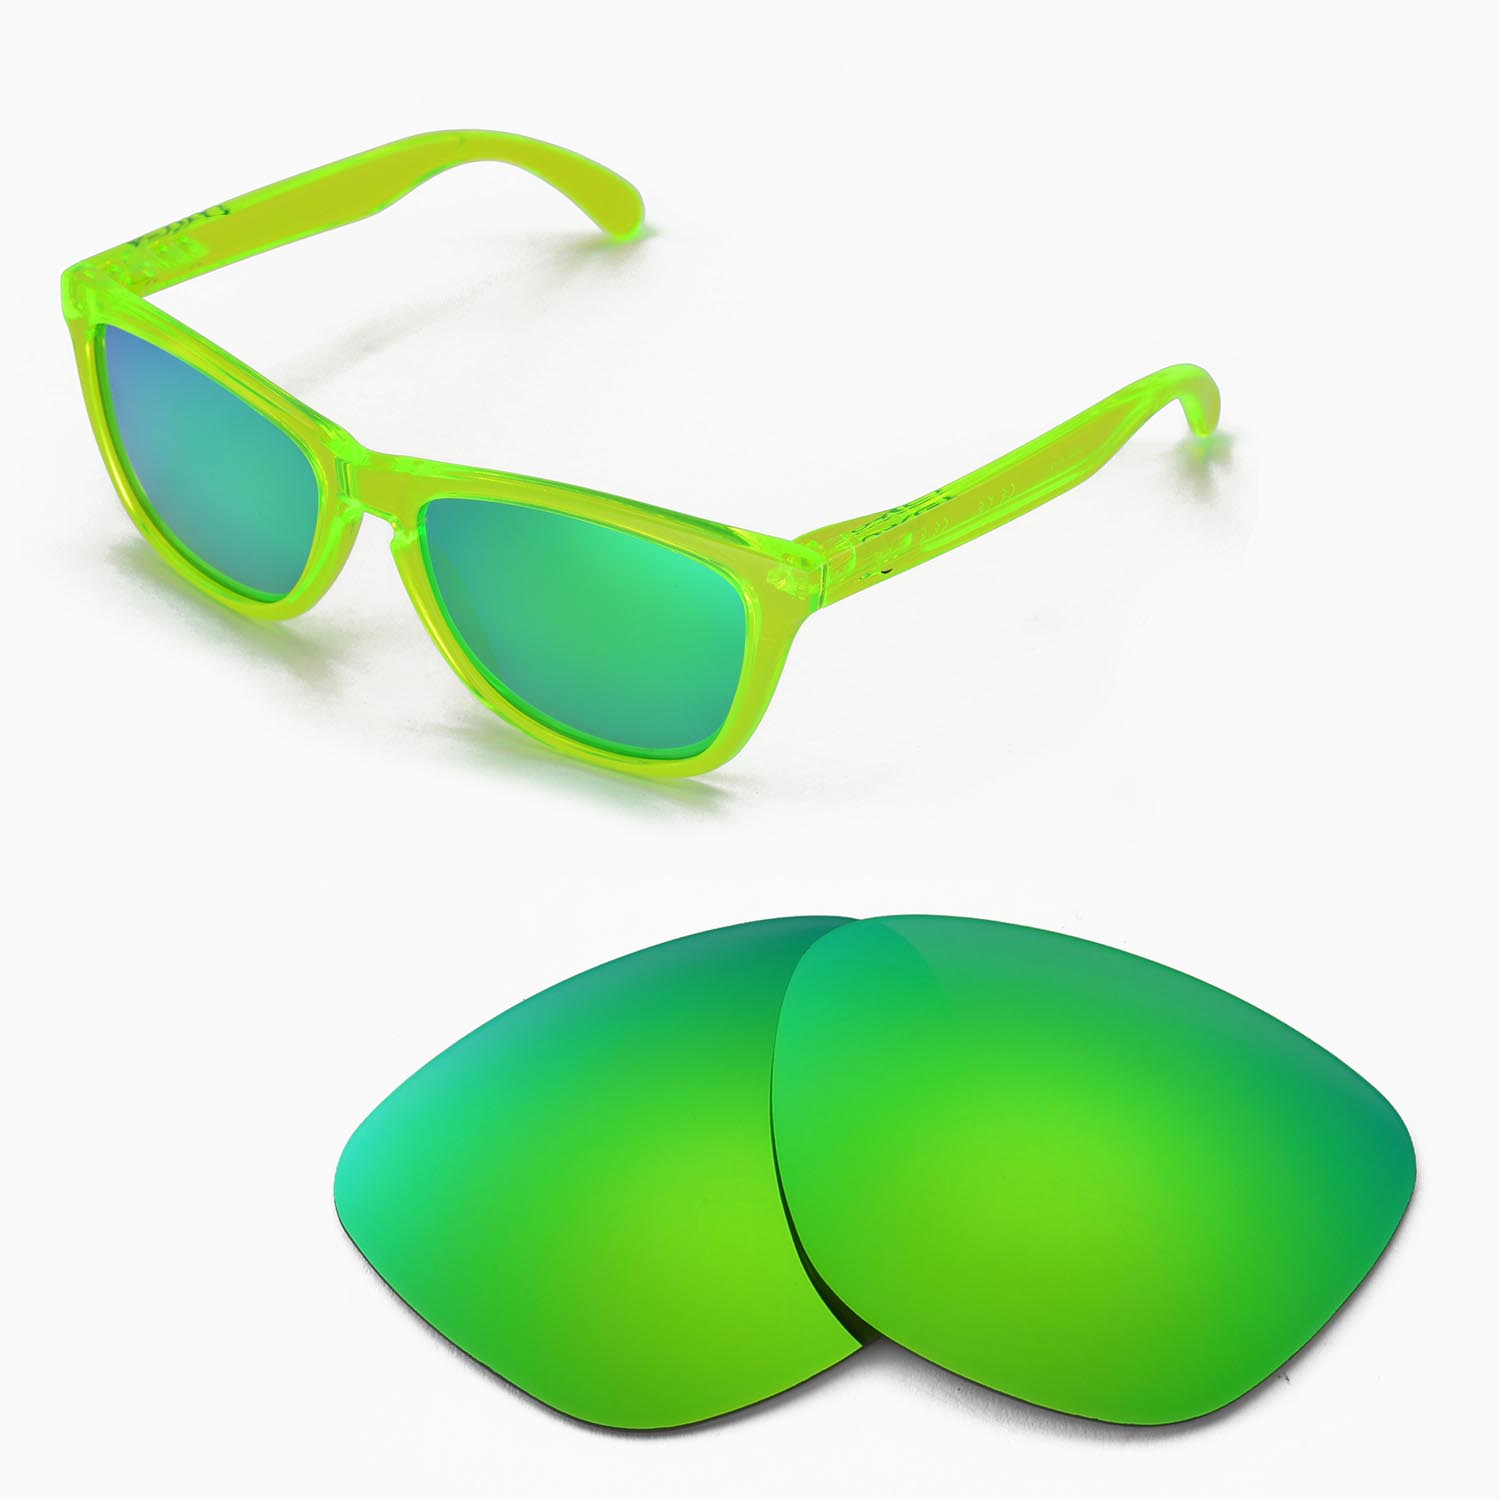 972b2927fe8 Details about New Walleva Emerald Polarized Replacement Lenses For Oakley  Frogskins